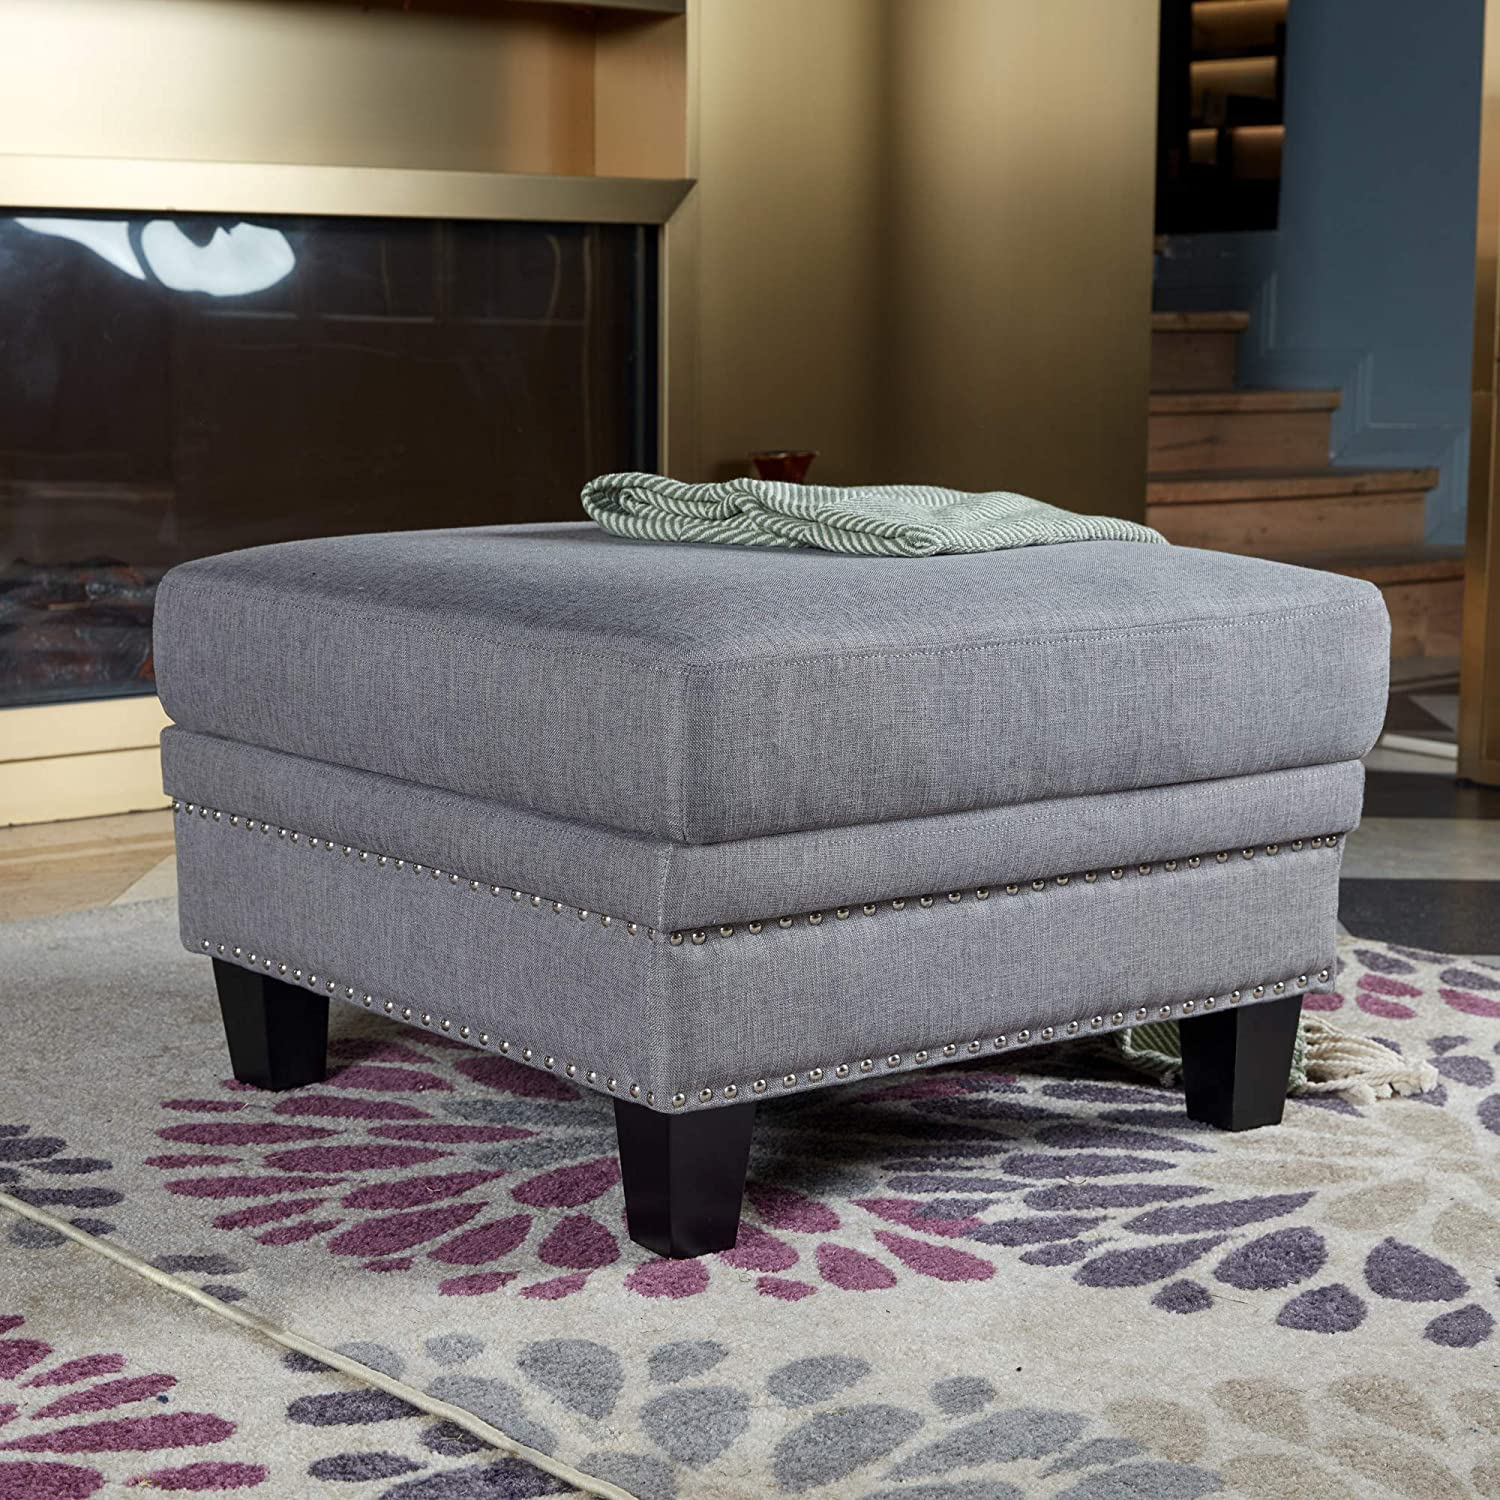 Lokatse Home Coffee Table Ottoman Large Square With Pine Legs 266 X 266 X 183 Inch Gray